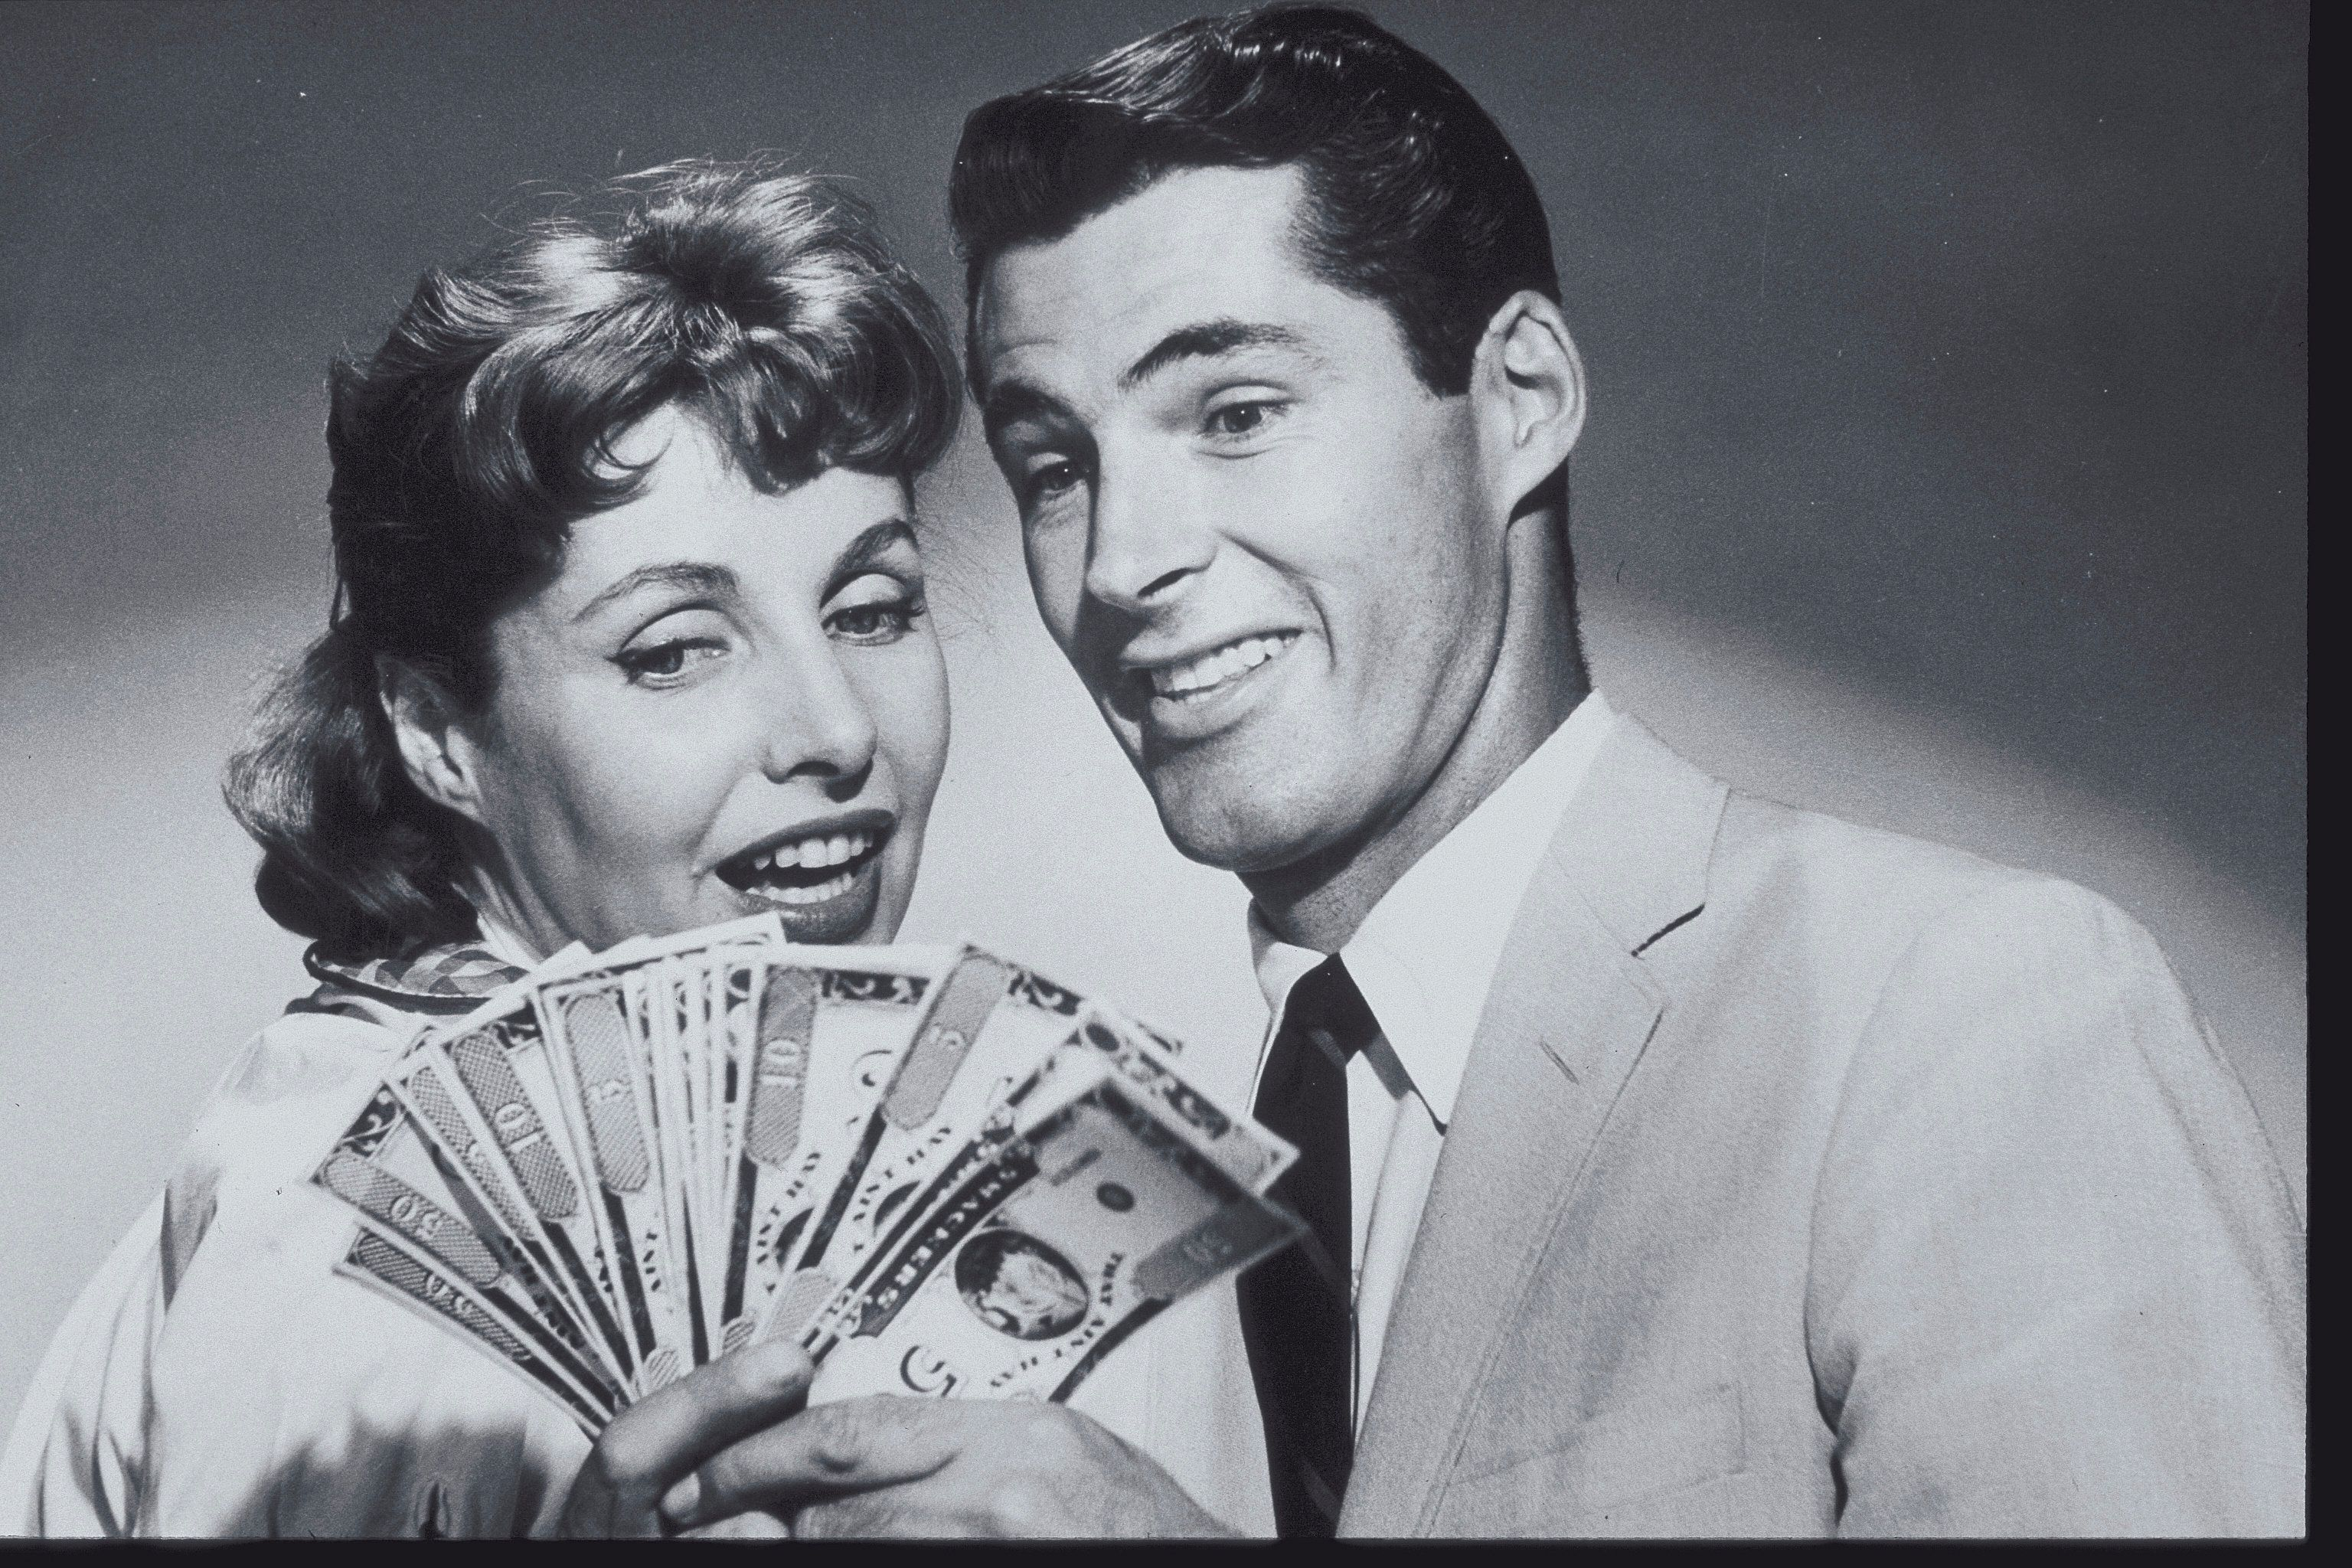 COUPLE SMILING AT A SPREAD OF MONEY